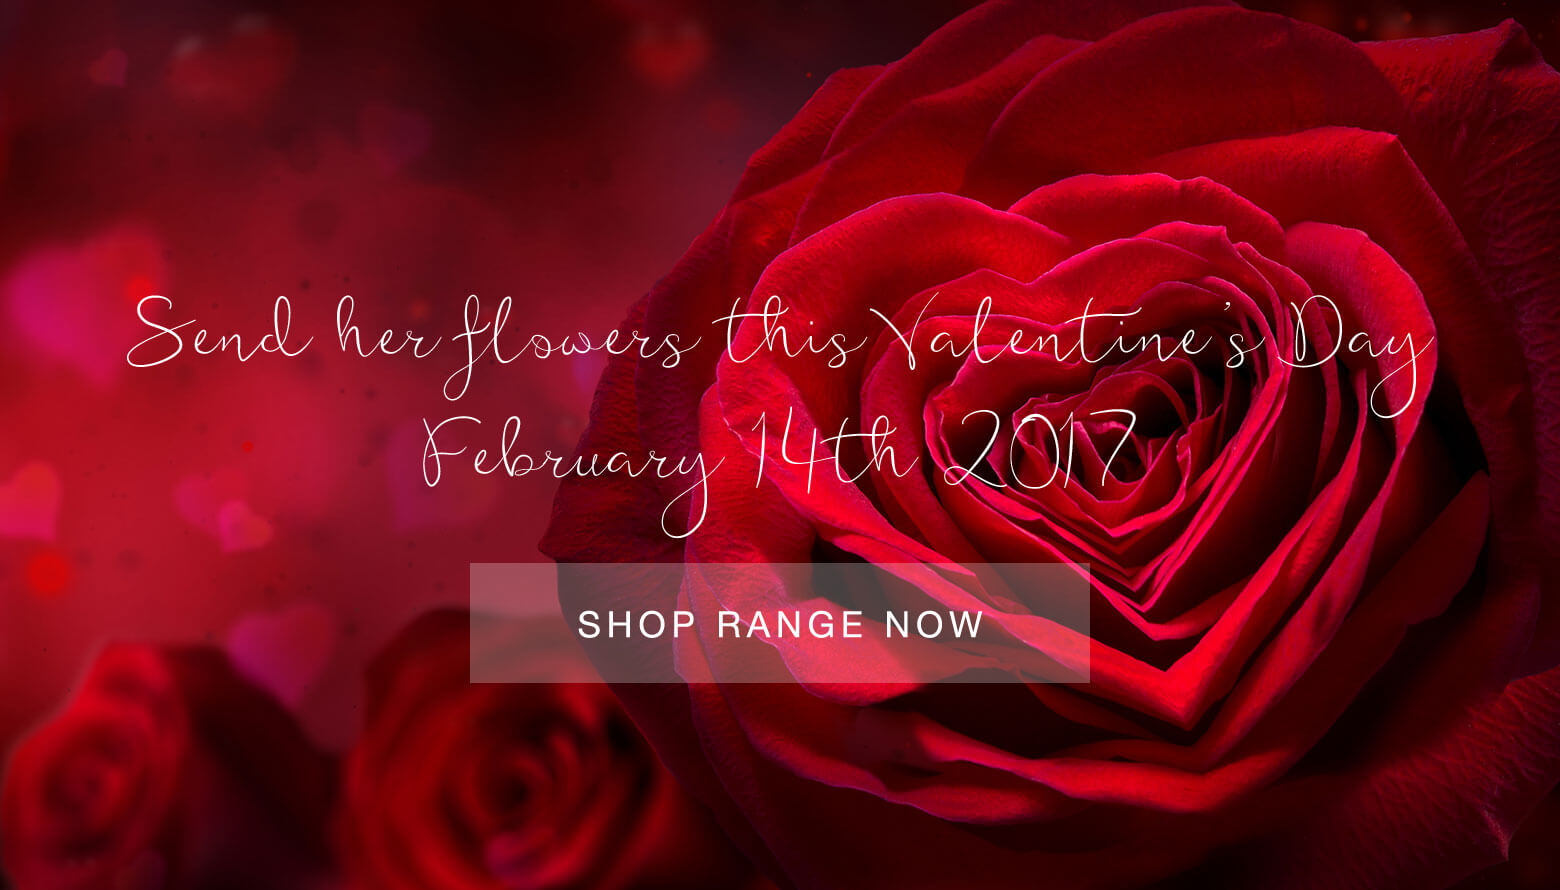 Valentines Day Banners 2017